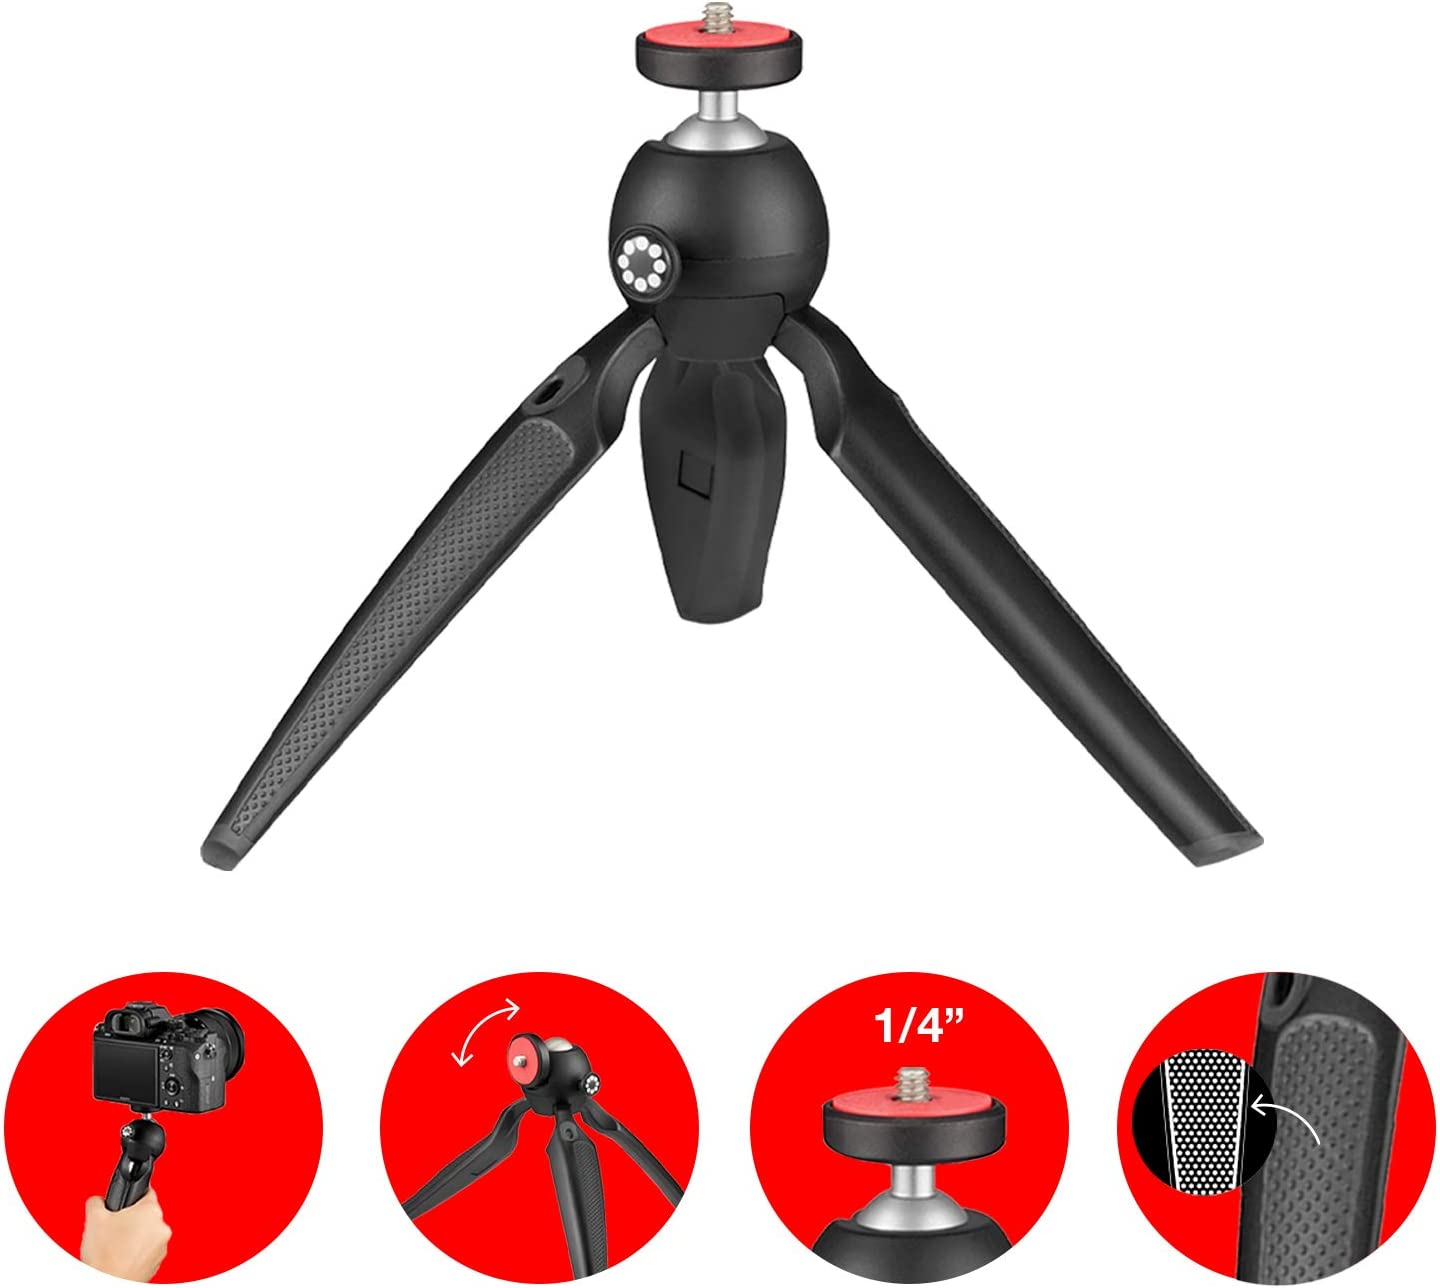 Mini Desktop Tripod,Portable Non-Slip Tabletop Tripod Base Stand Handle Grip Holder Stabilizer Photography Accessory with 1//4 inch Screw Pattern Universal for Smartphone Action Camera Gray